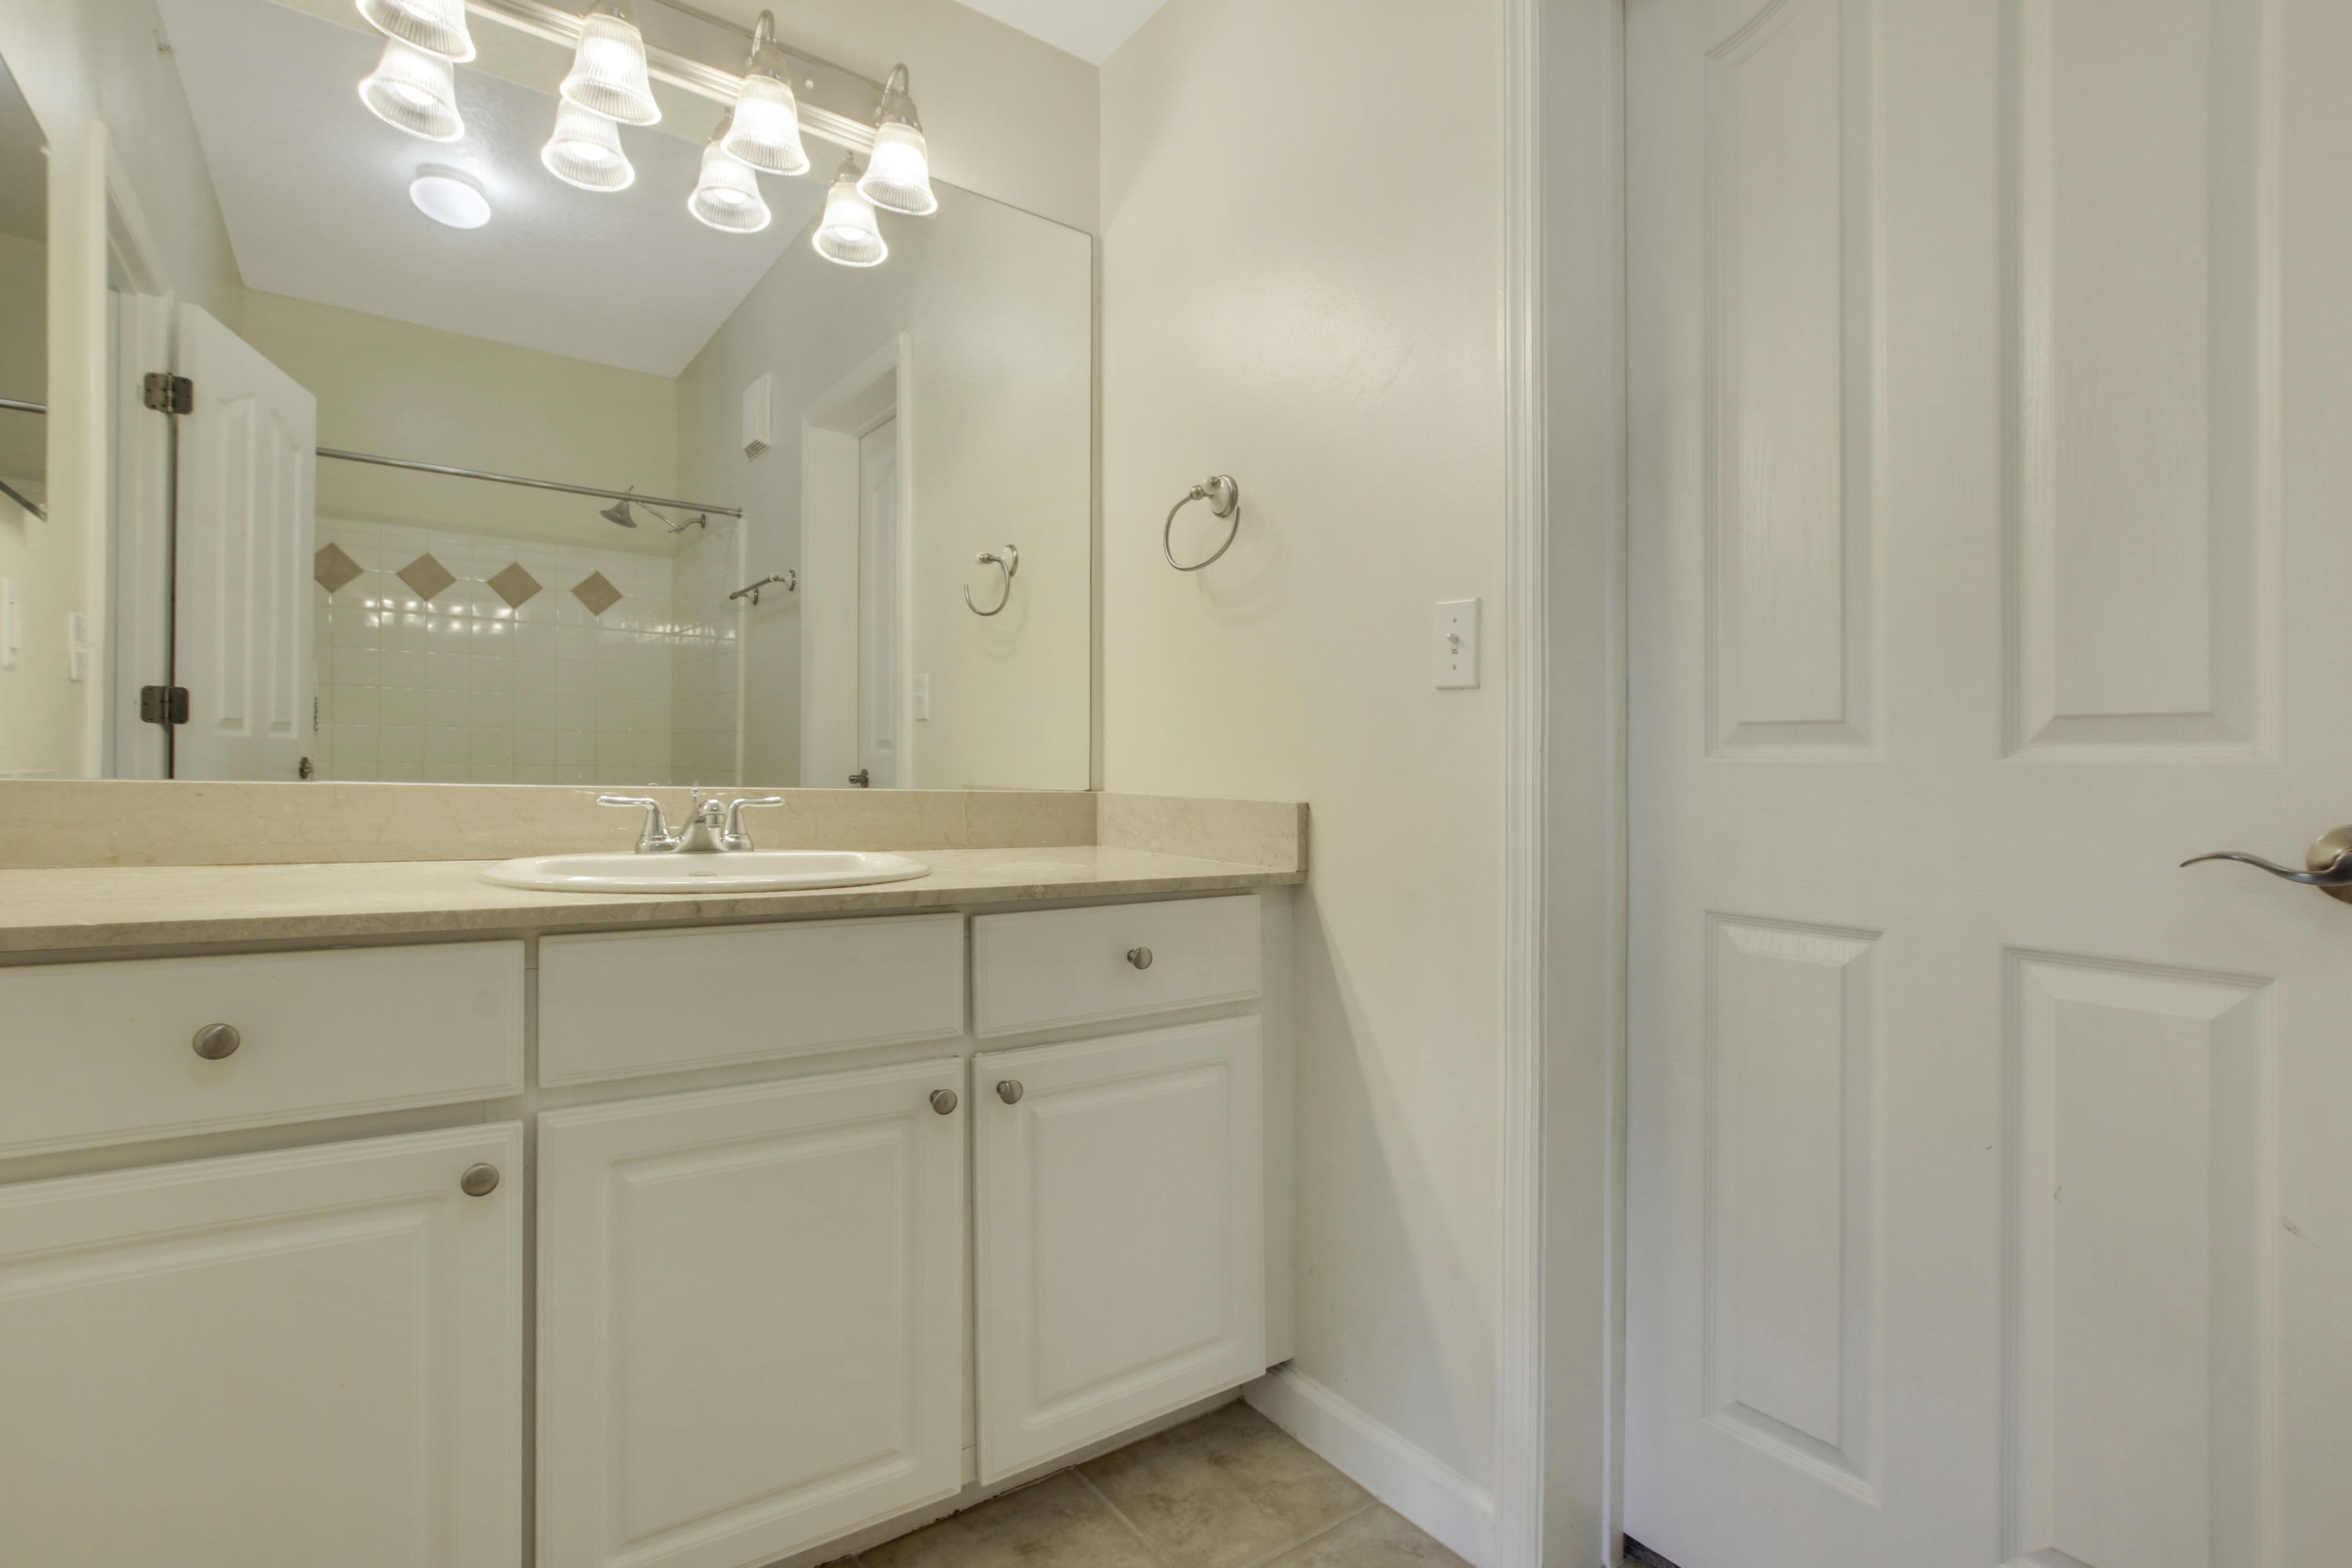 245 Murcia Drive 204  - Abacoa Homes - photo 11